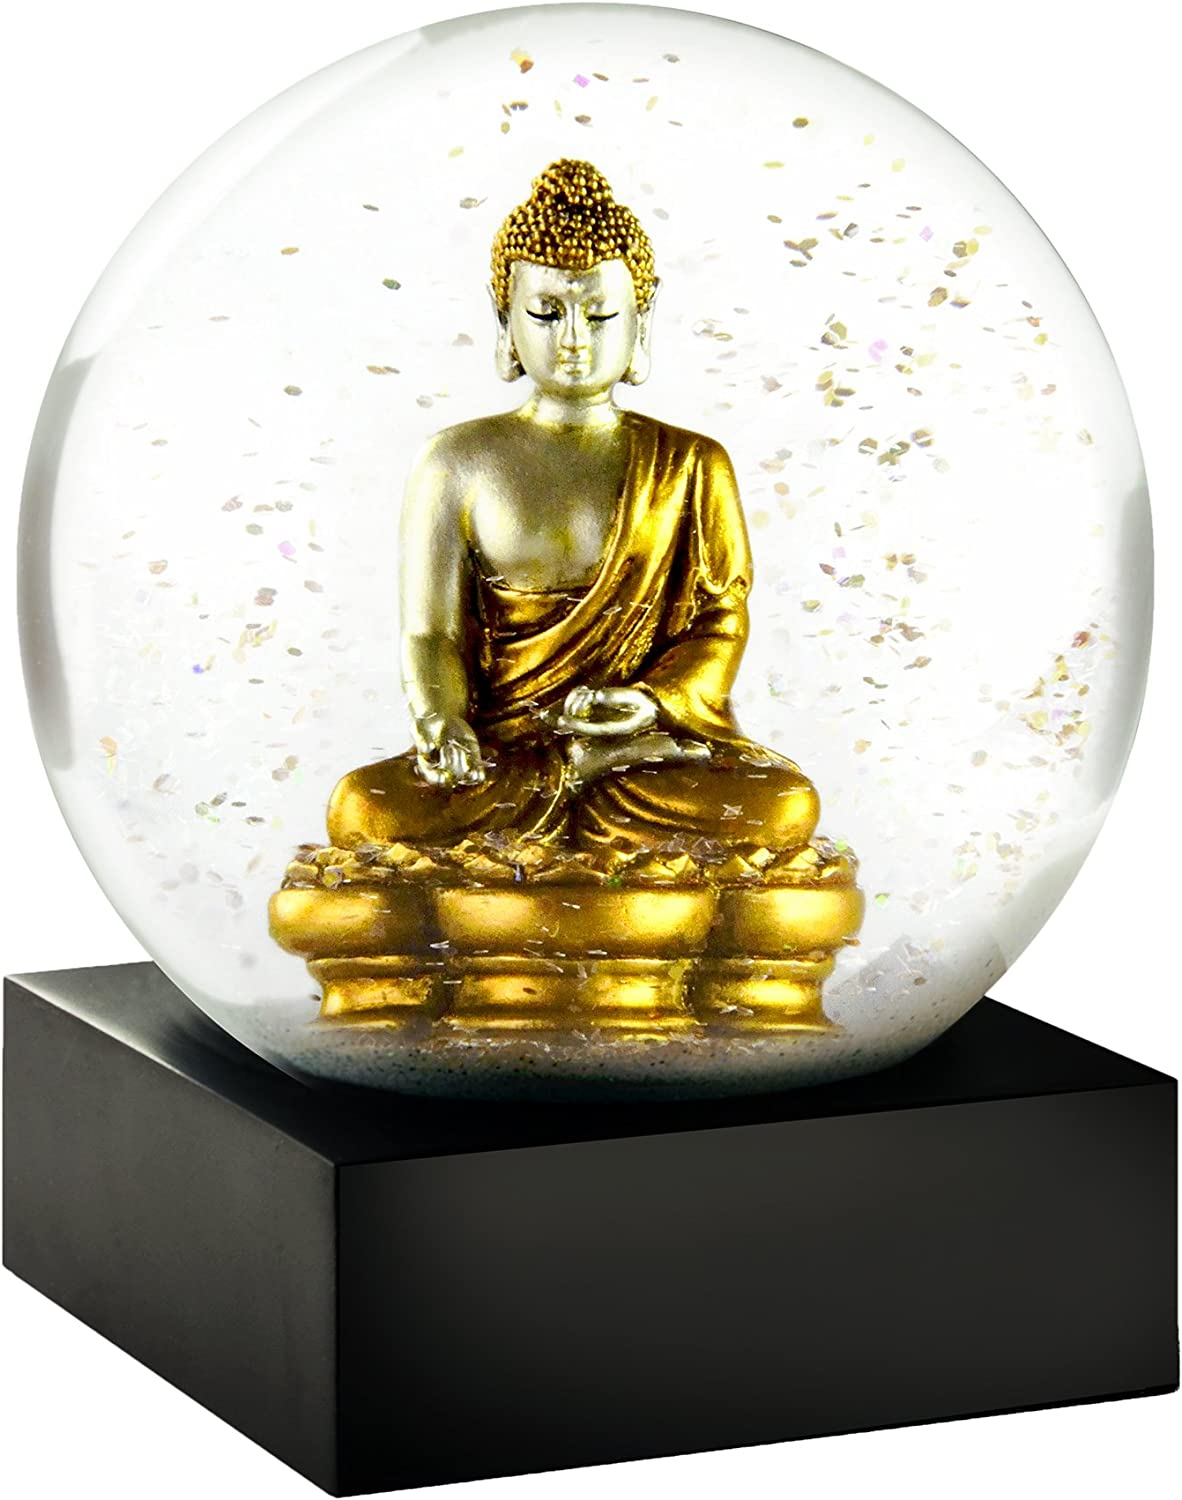 Superior Sale Special Price CoolSnowGlobes Gold Buddha Globe Snow Cool